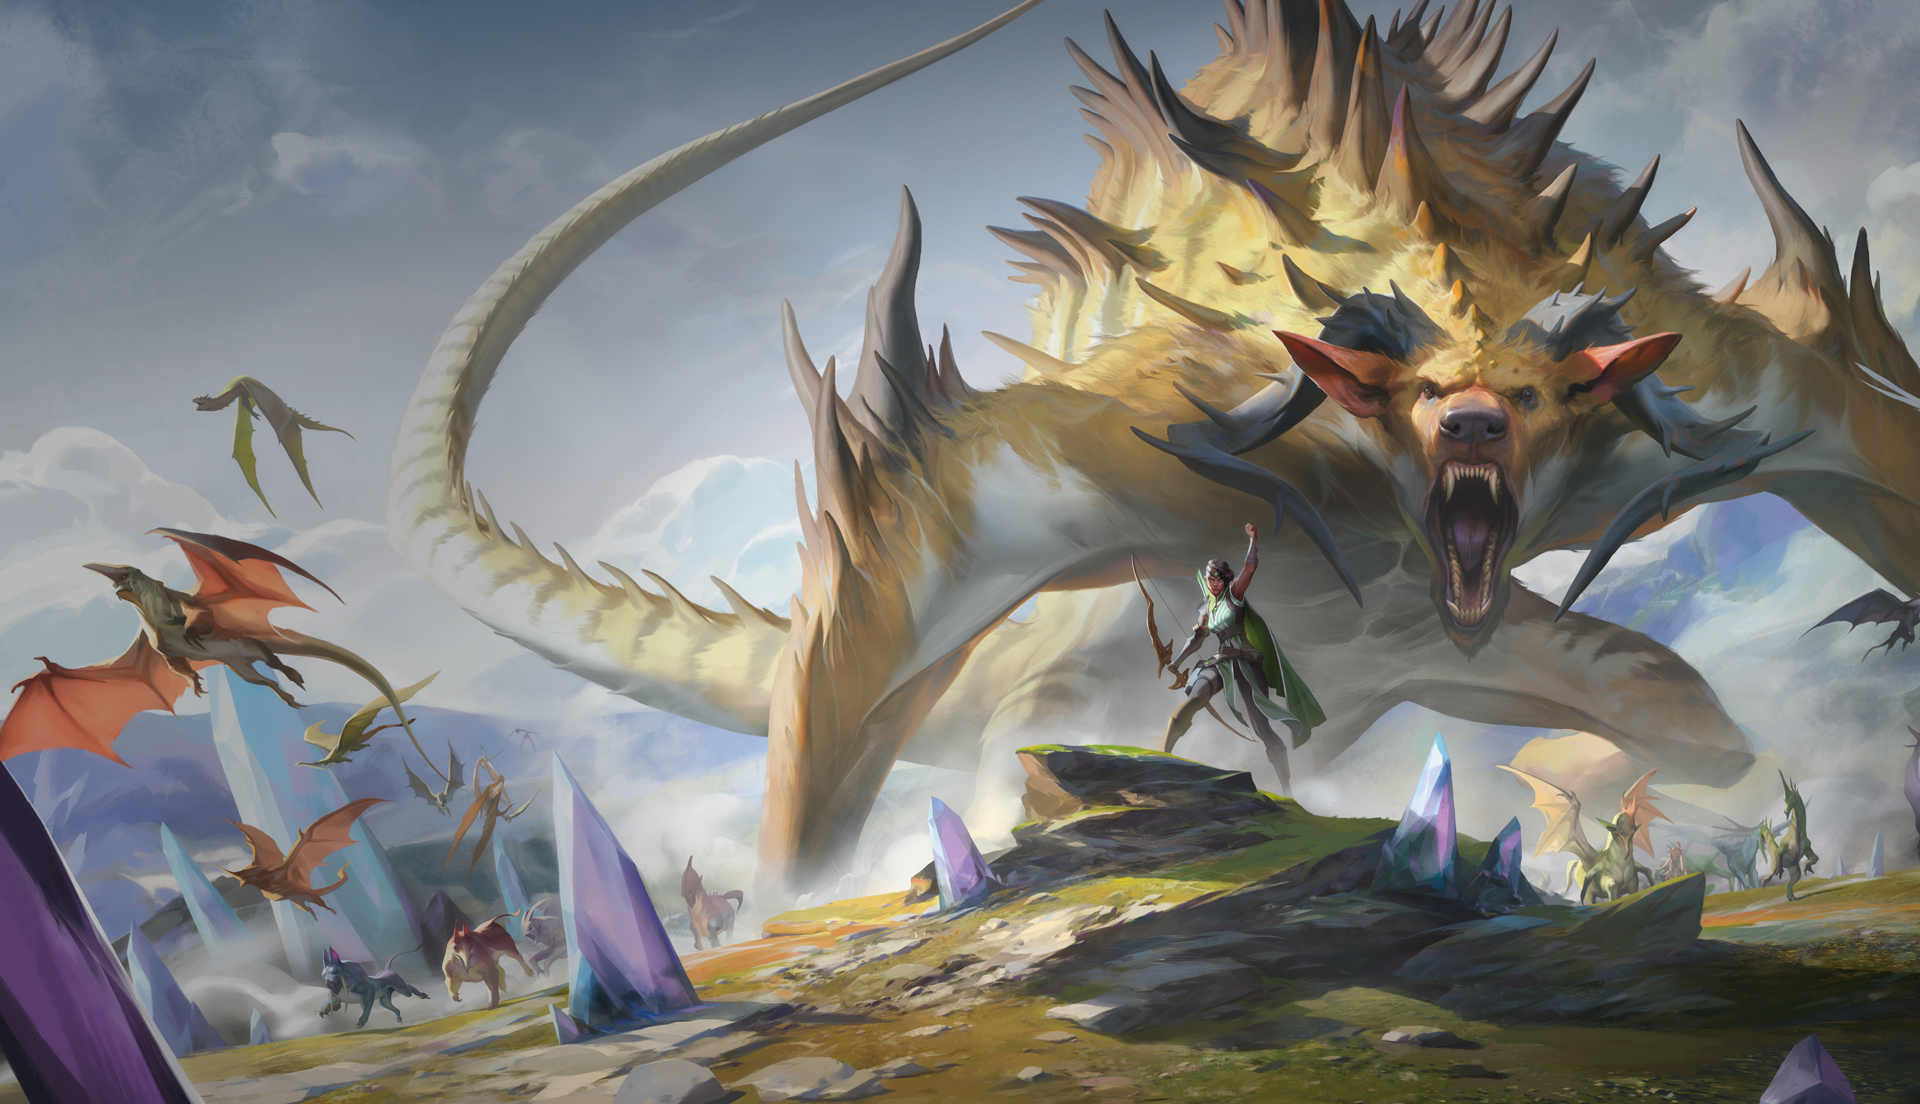 Promotional art for Ikoria, the latest expansion